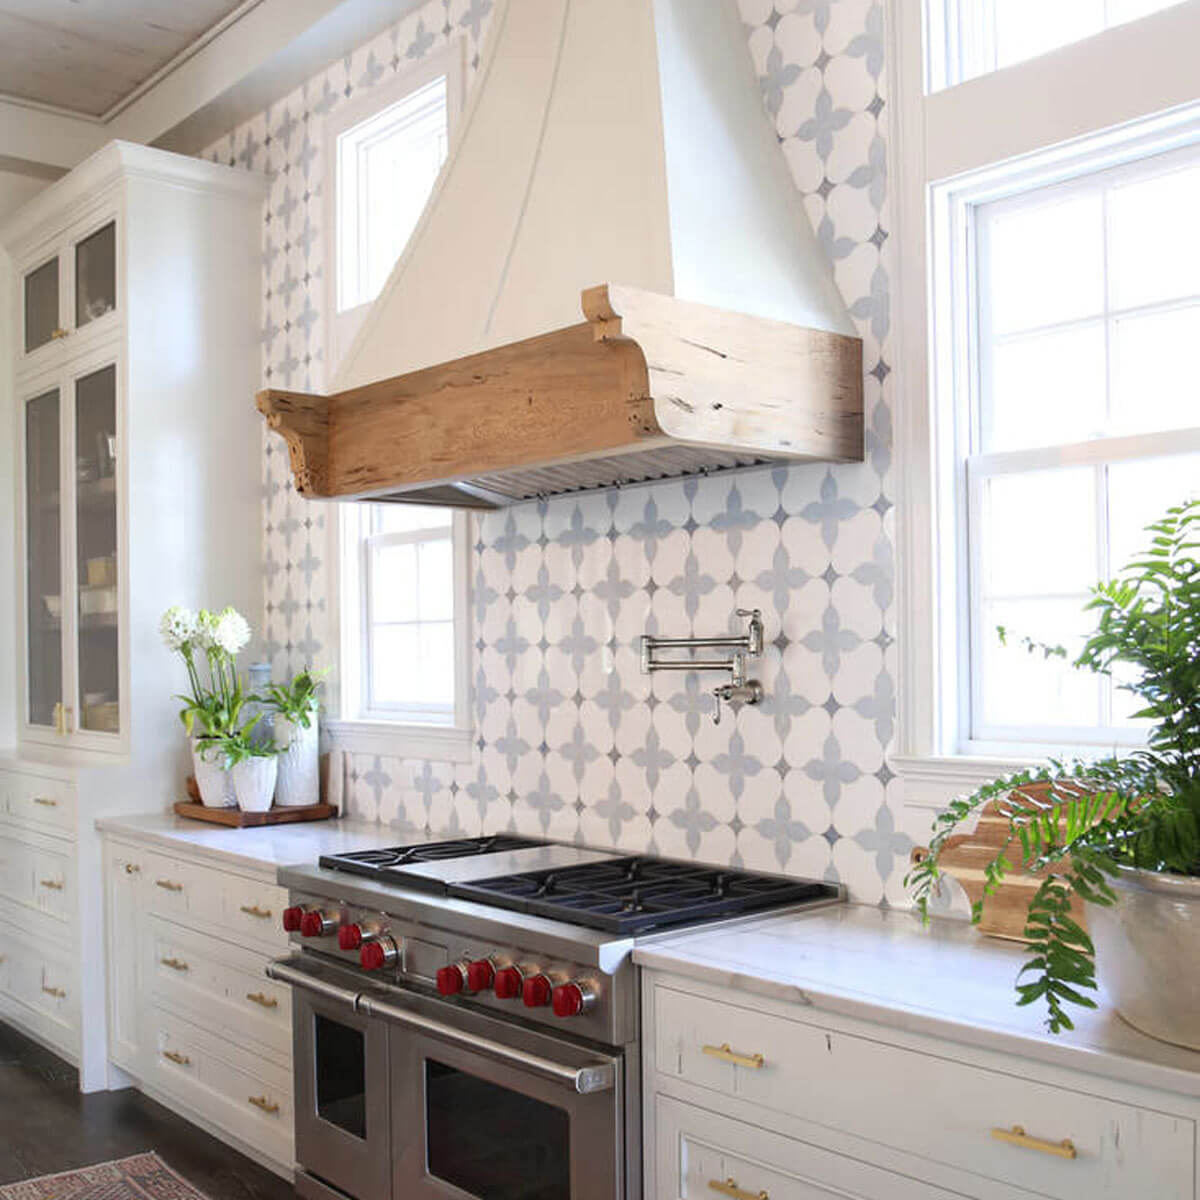 - List Of The Top 21 Ideas For Your Perfect Kitchen Backsplash